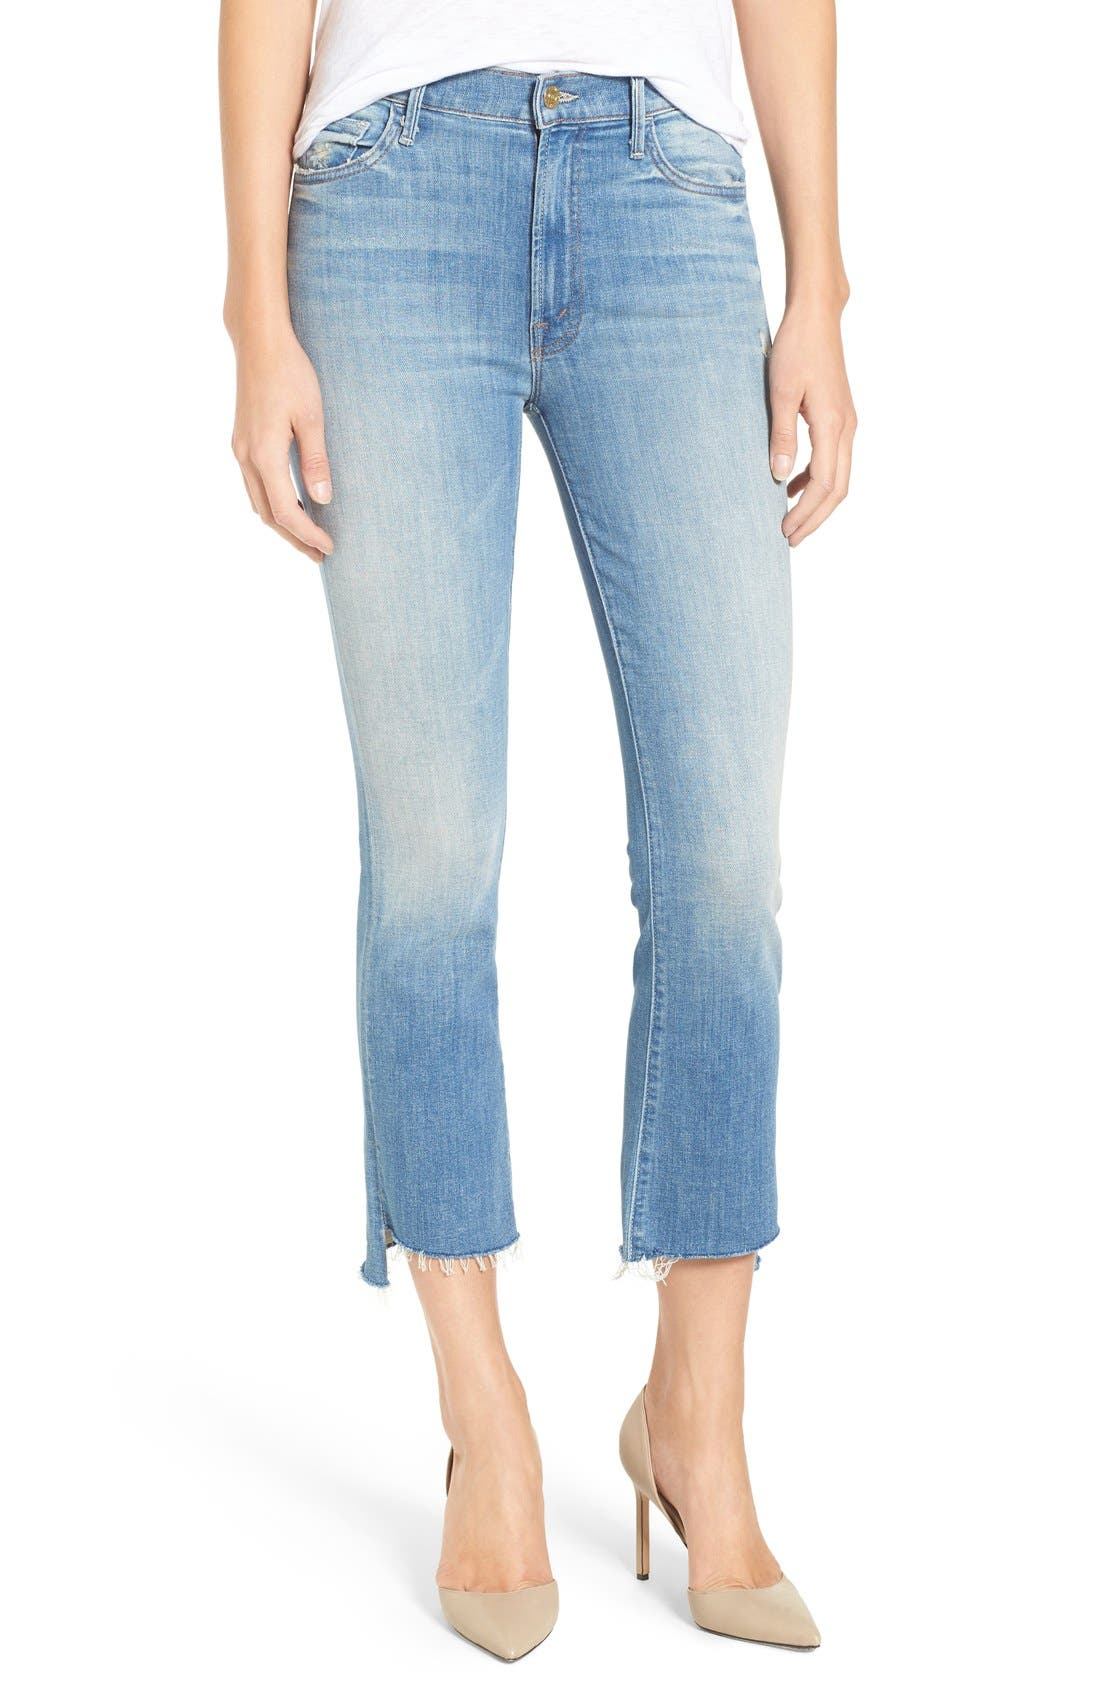 'The Insider' Crop Step Fray Jeans,                             Main thumbnail 1, color,                             SHAKE WELL